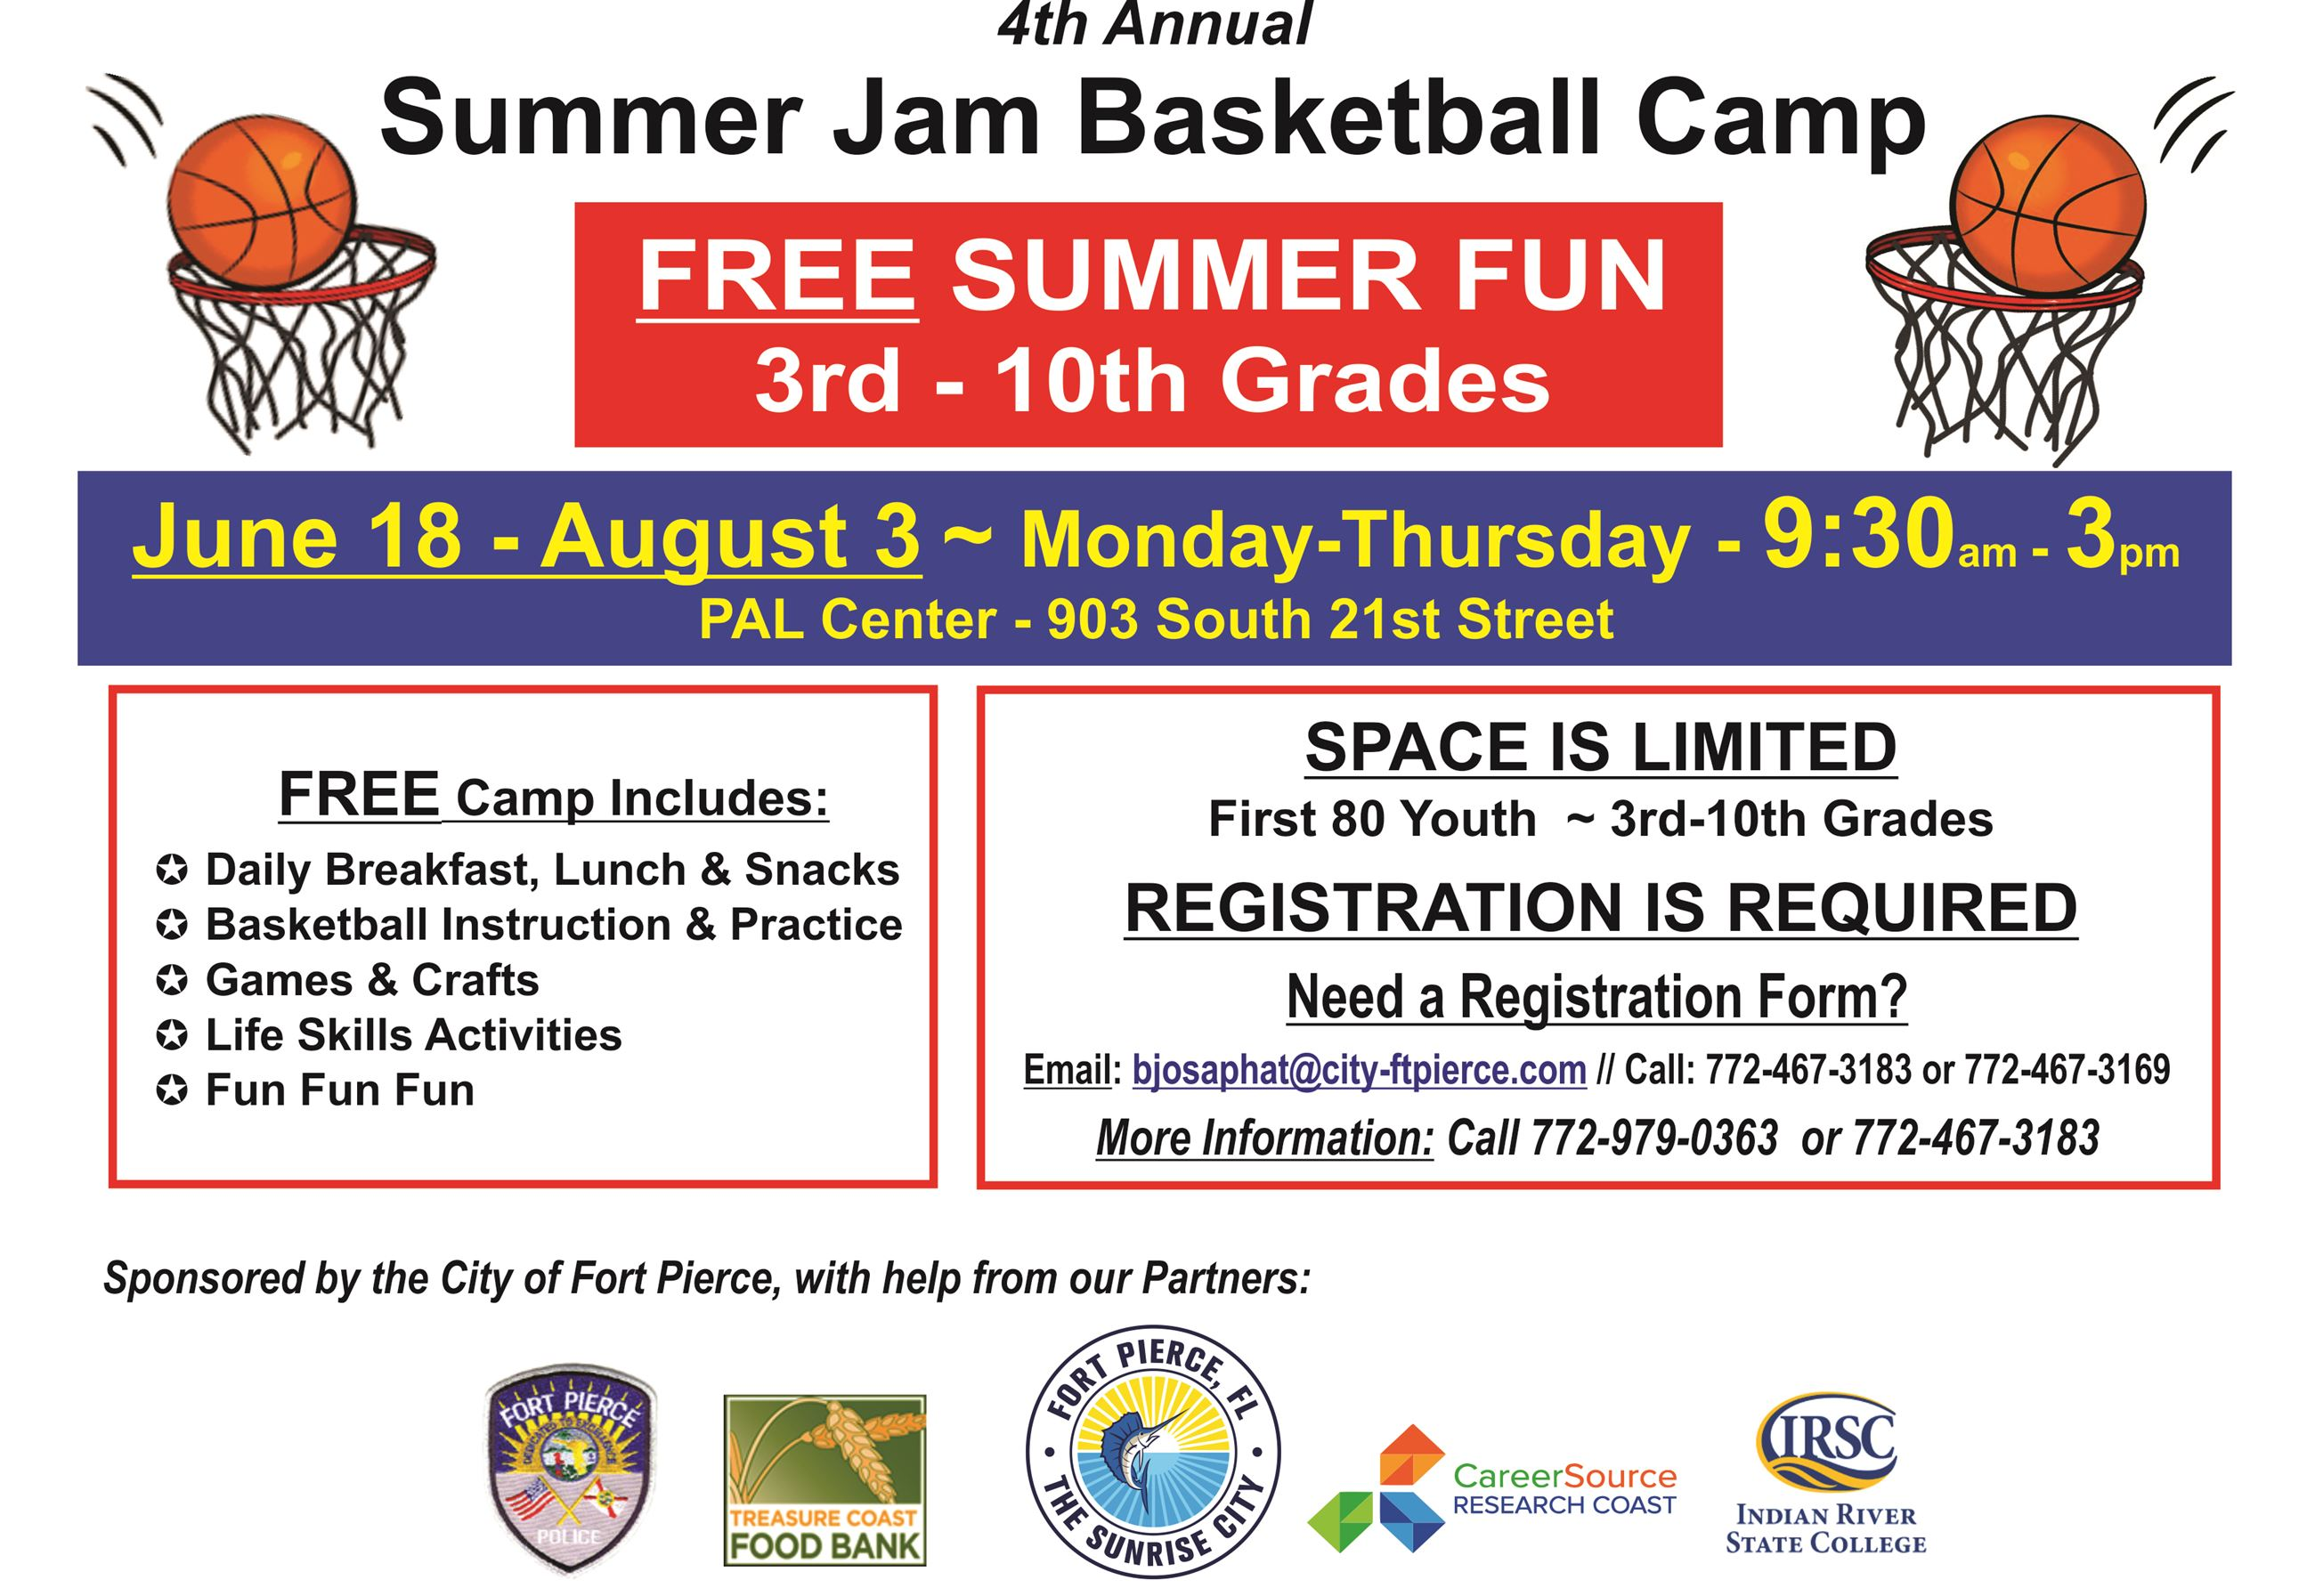 2018 Summer Jam Basketball Camp